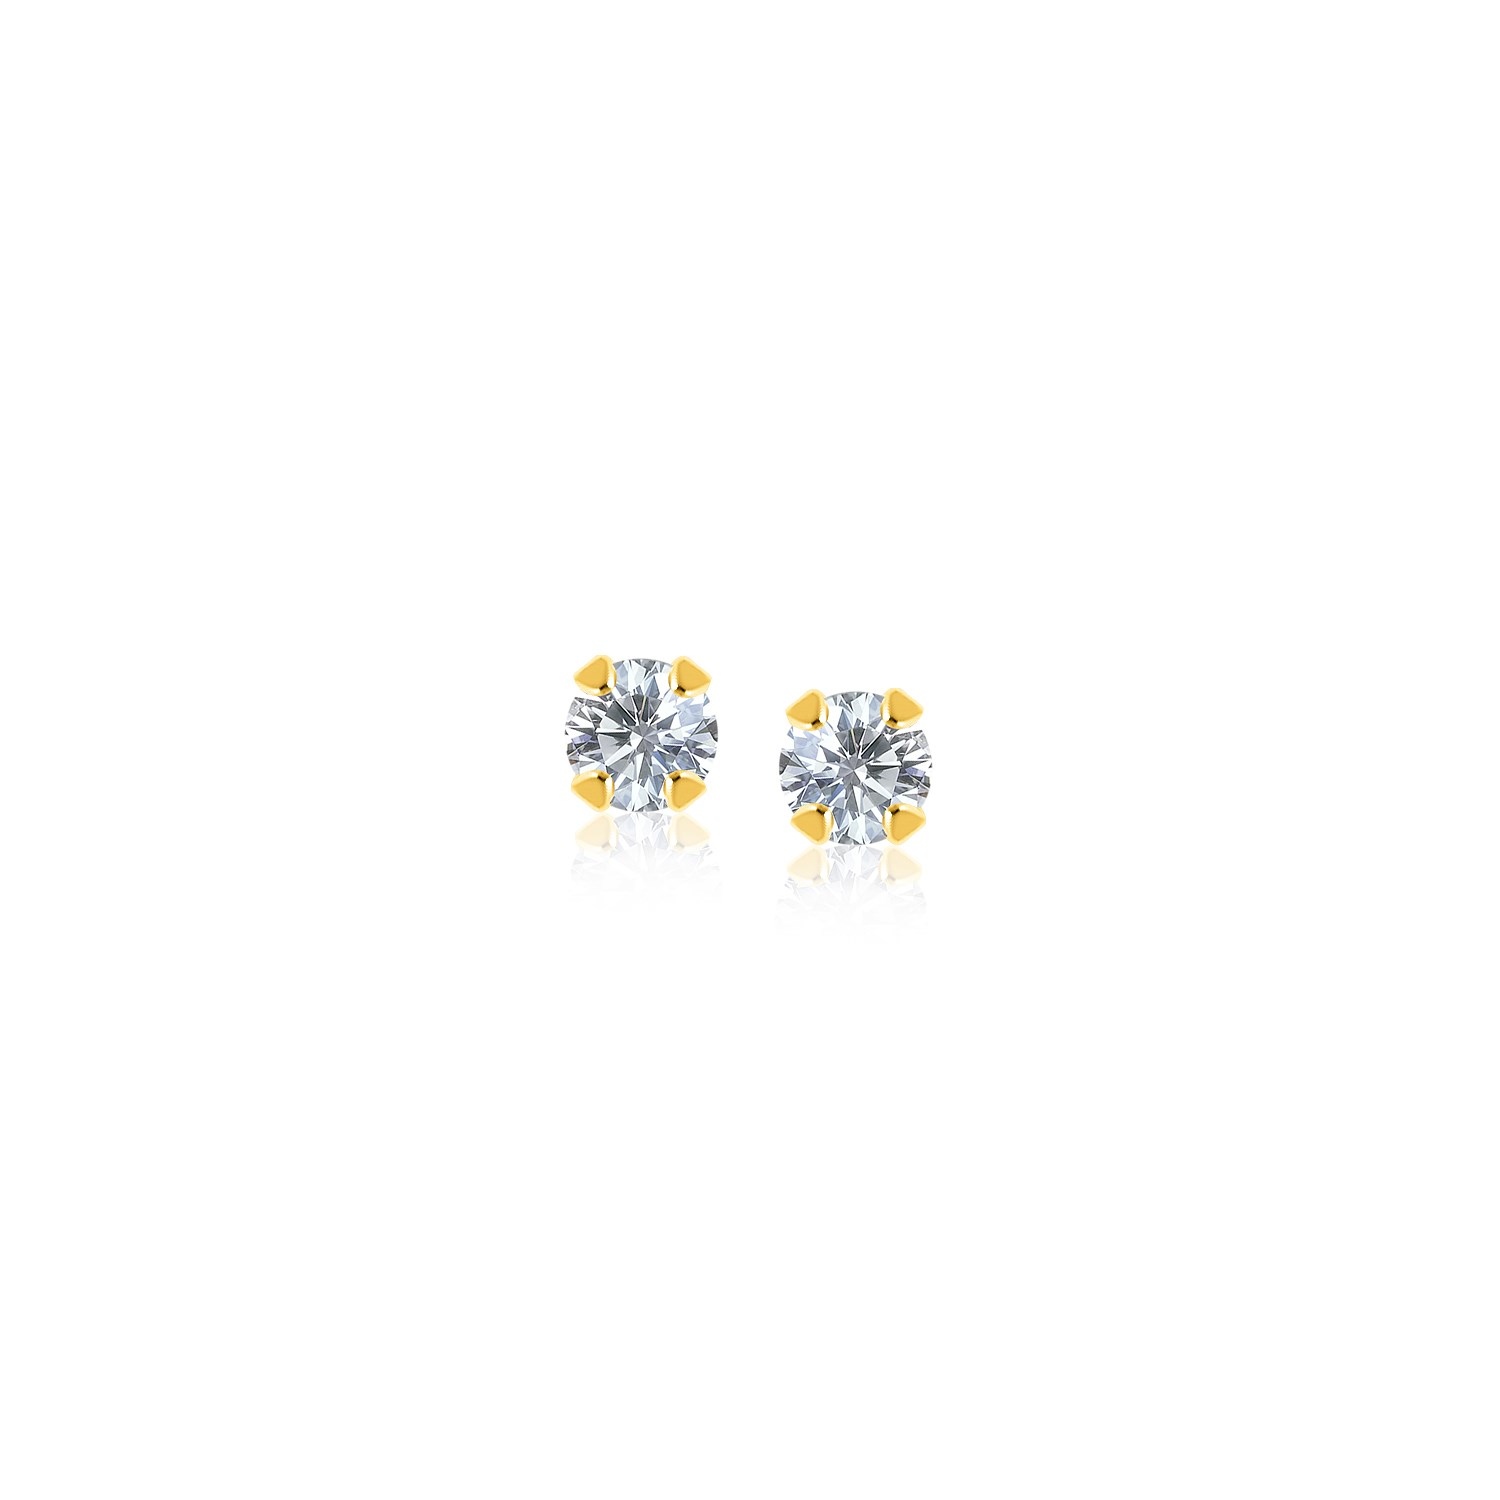 14K Yellow Gold Stud Earrings with Faceted White Cubic Zirconia